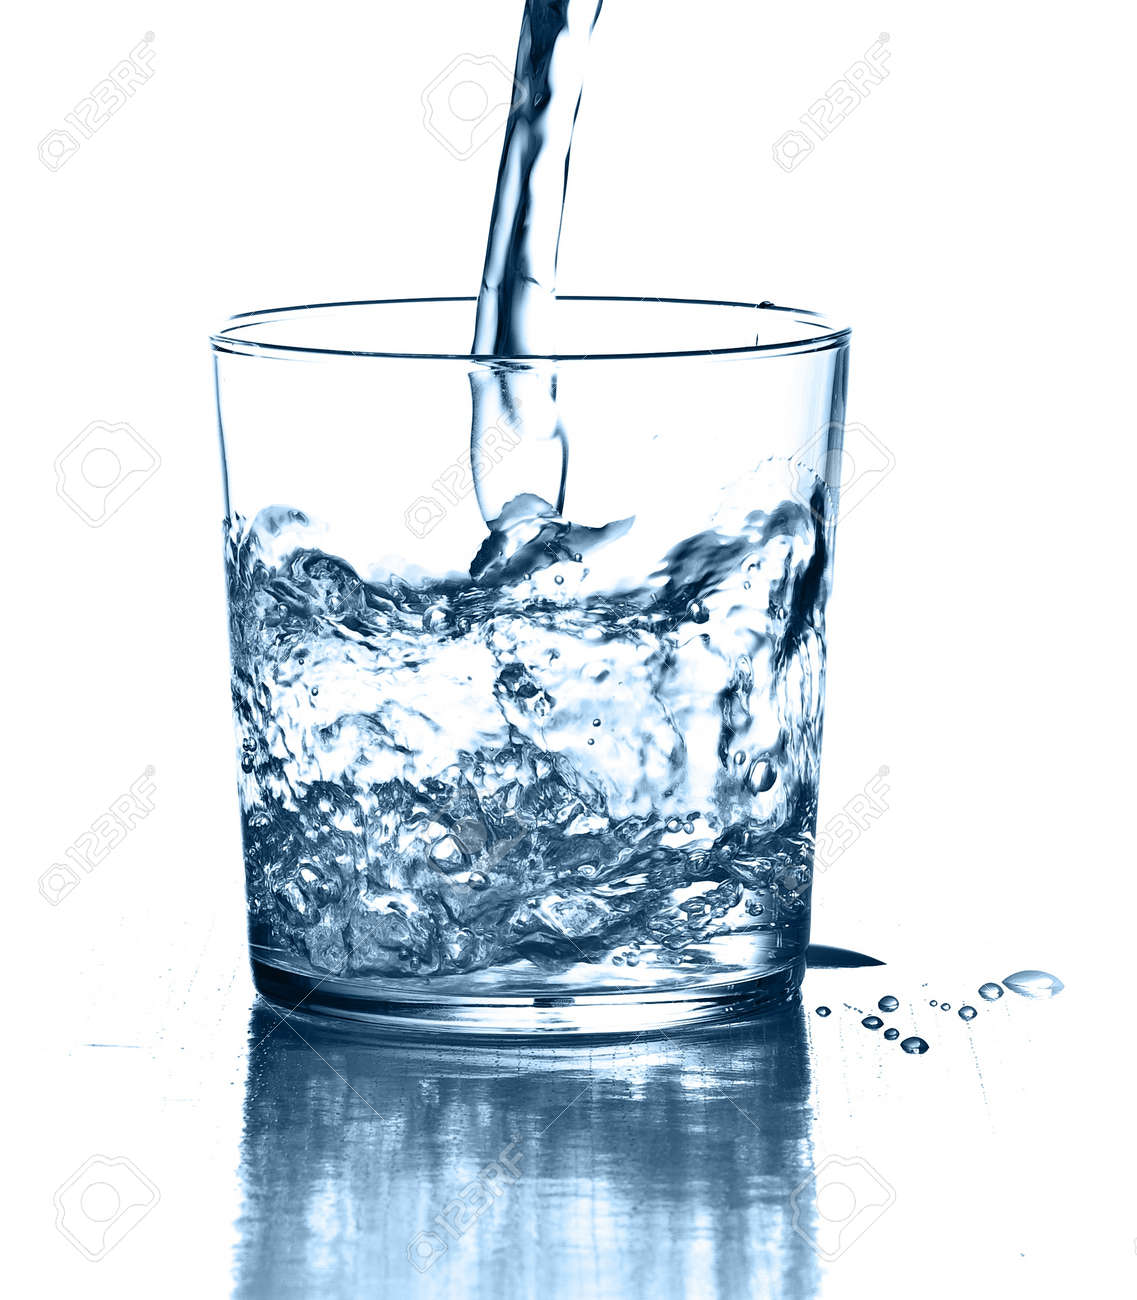 pouring water on a glass on white background Stock Photo - 8326662